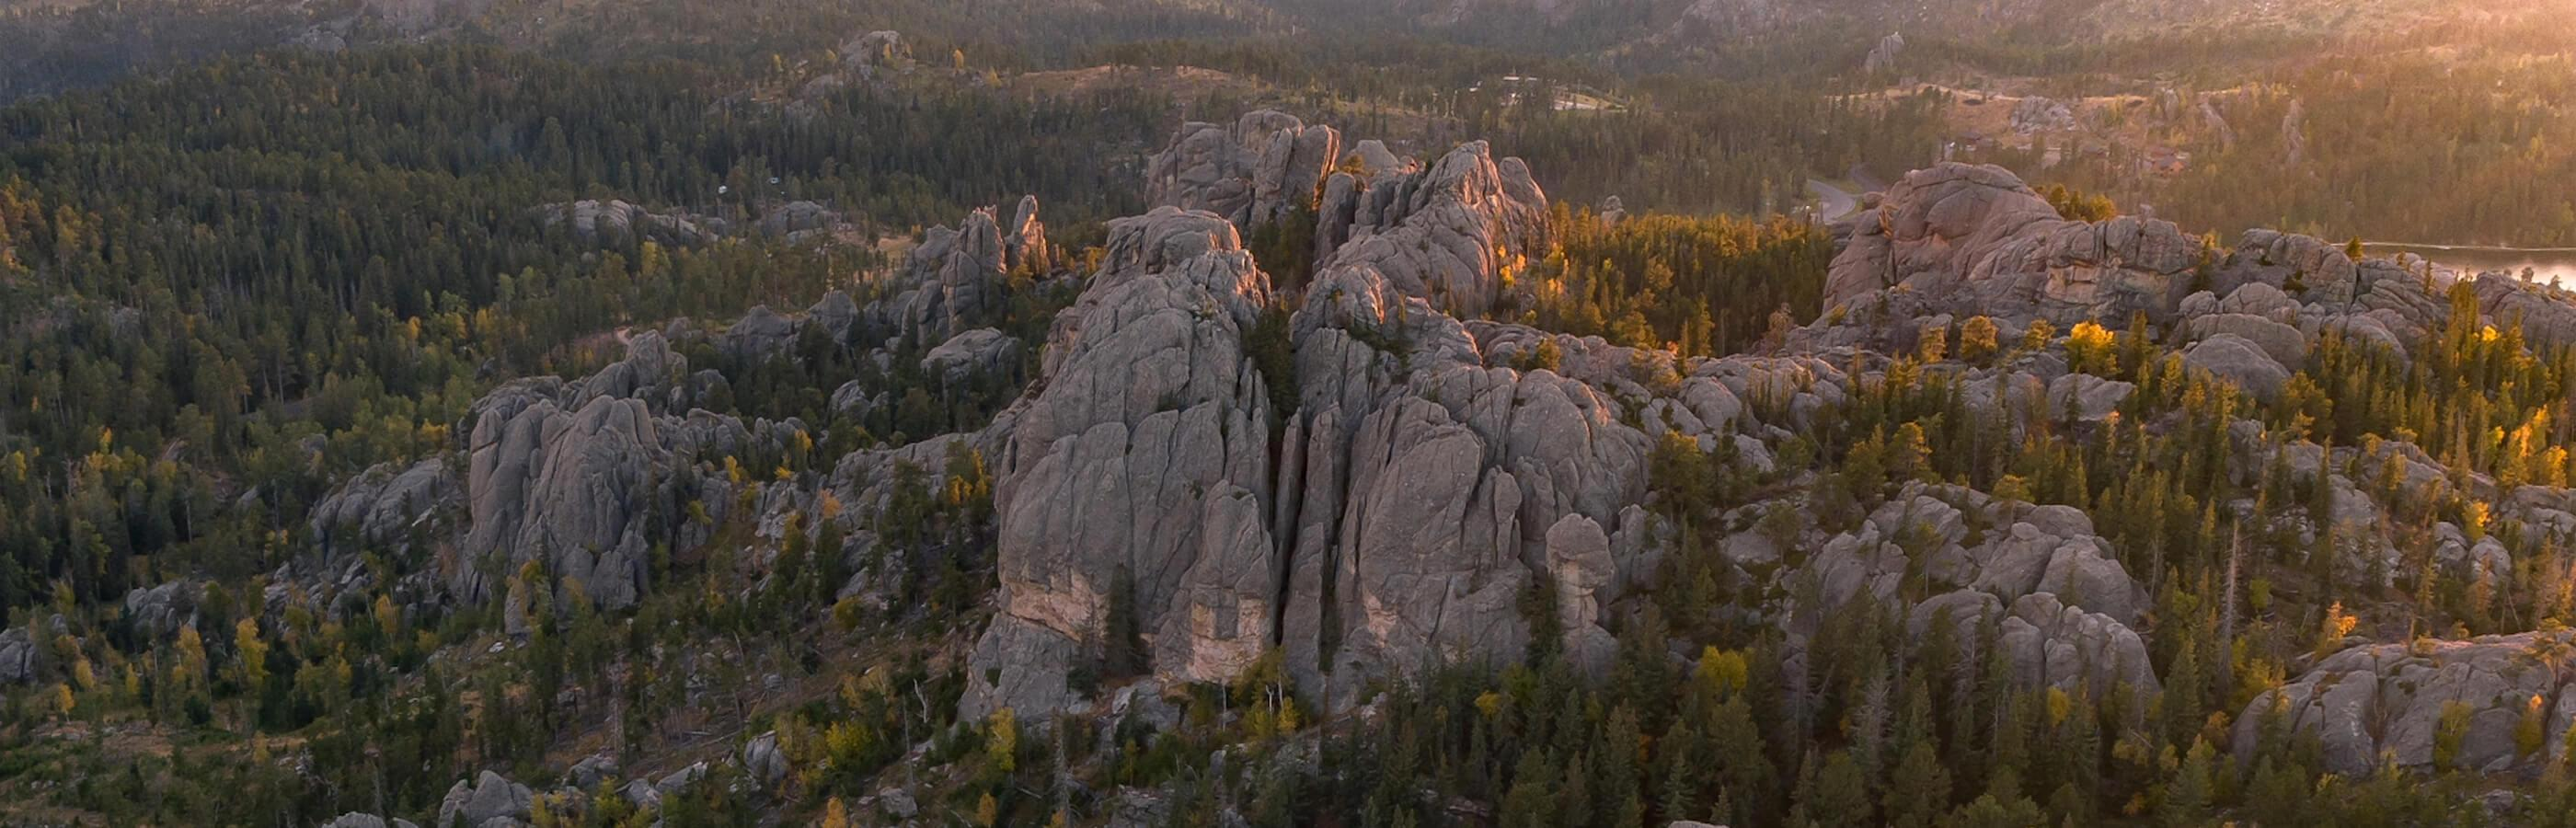 Custer State Park Aerial Photograph